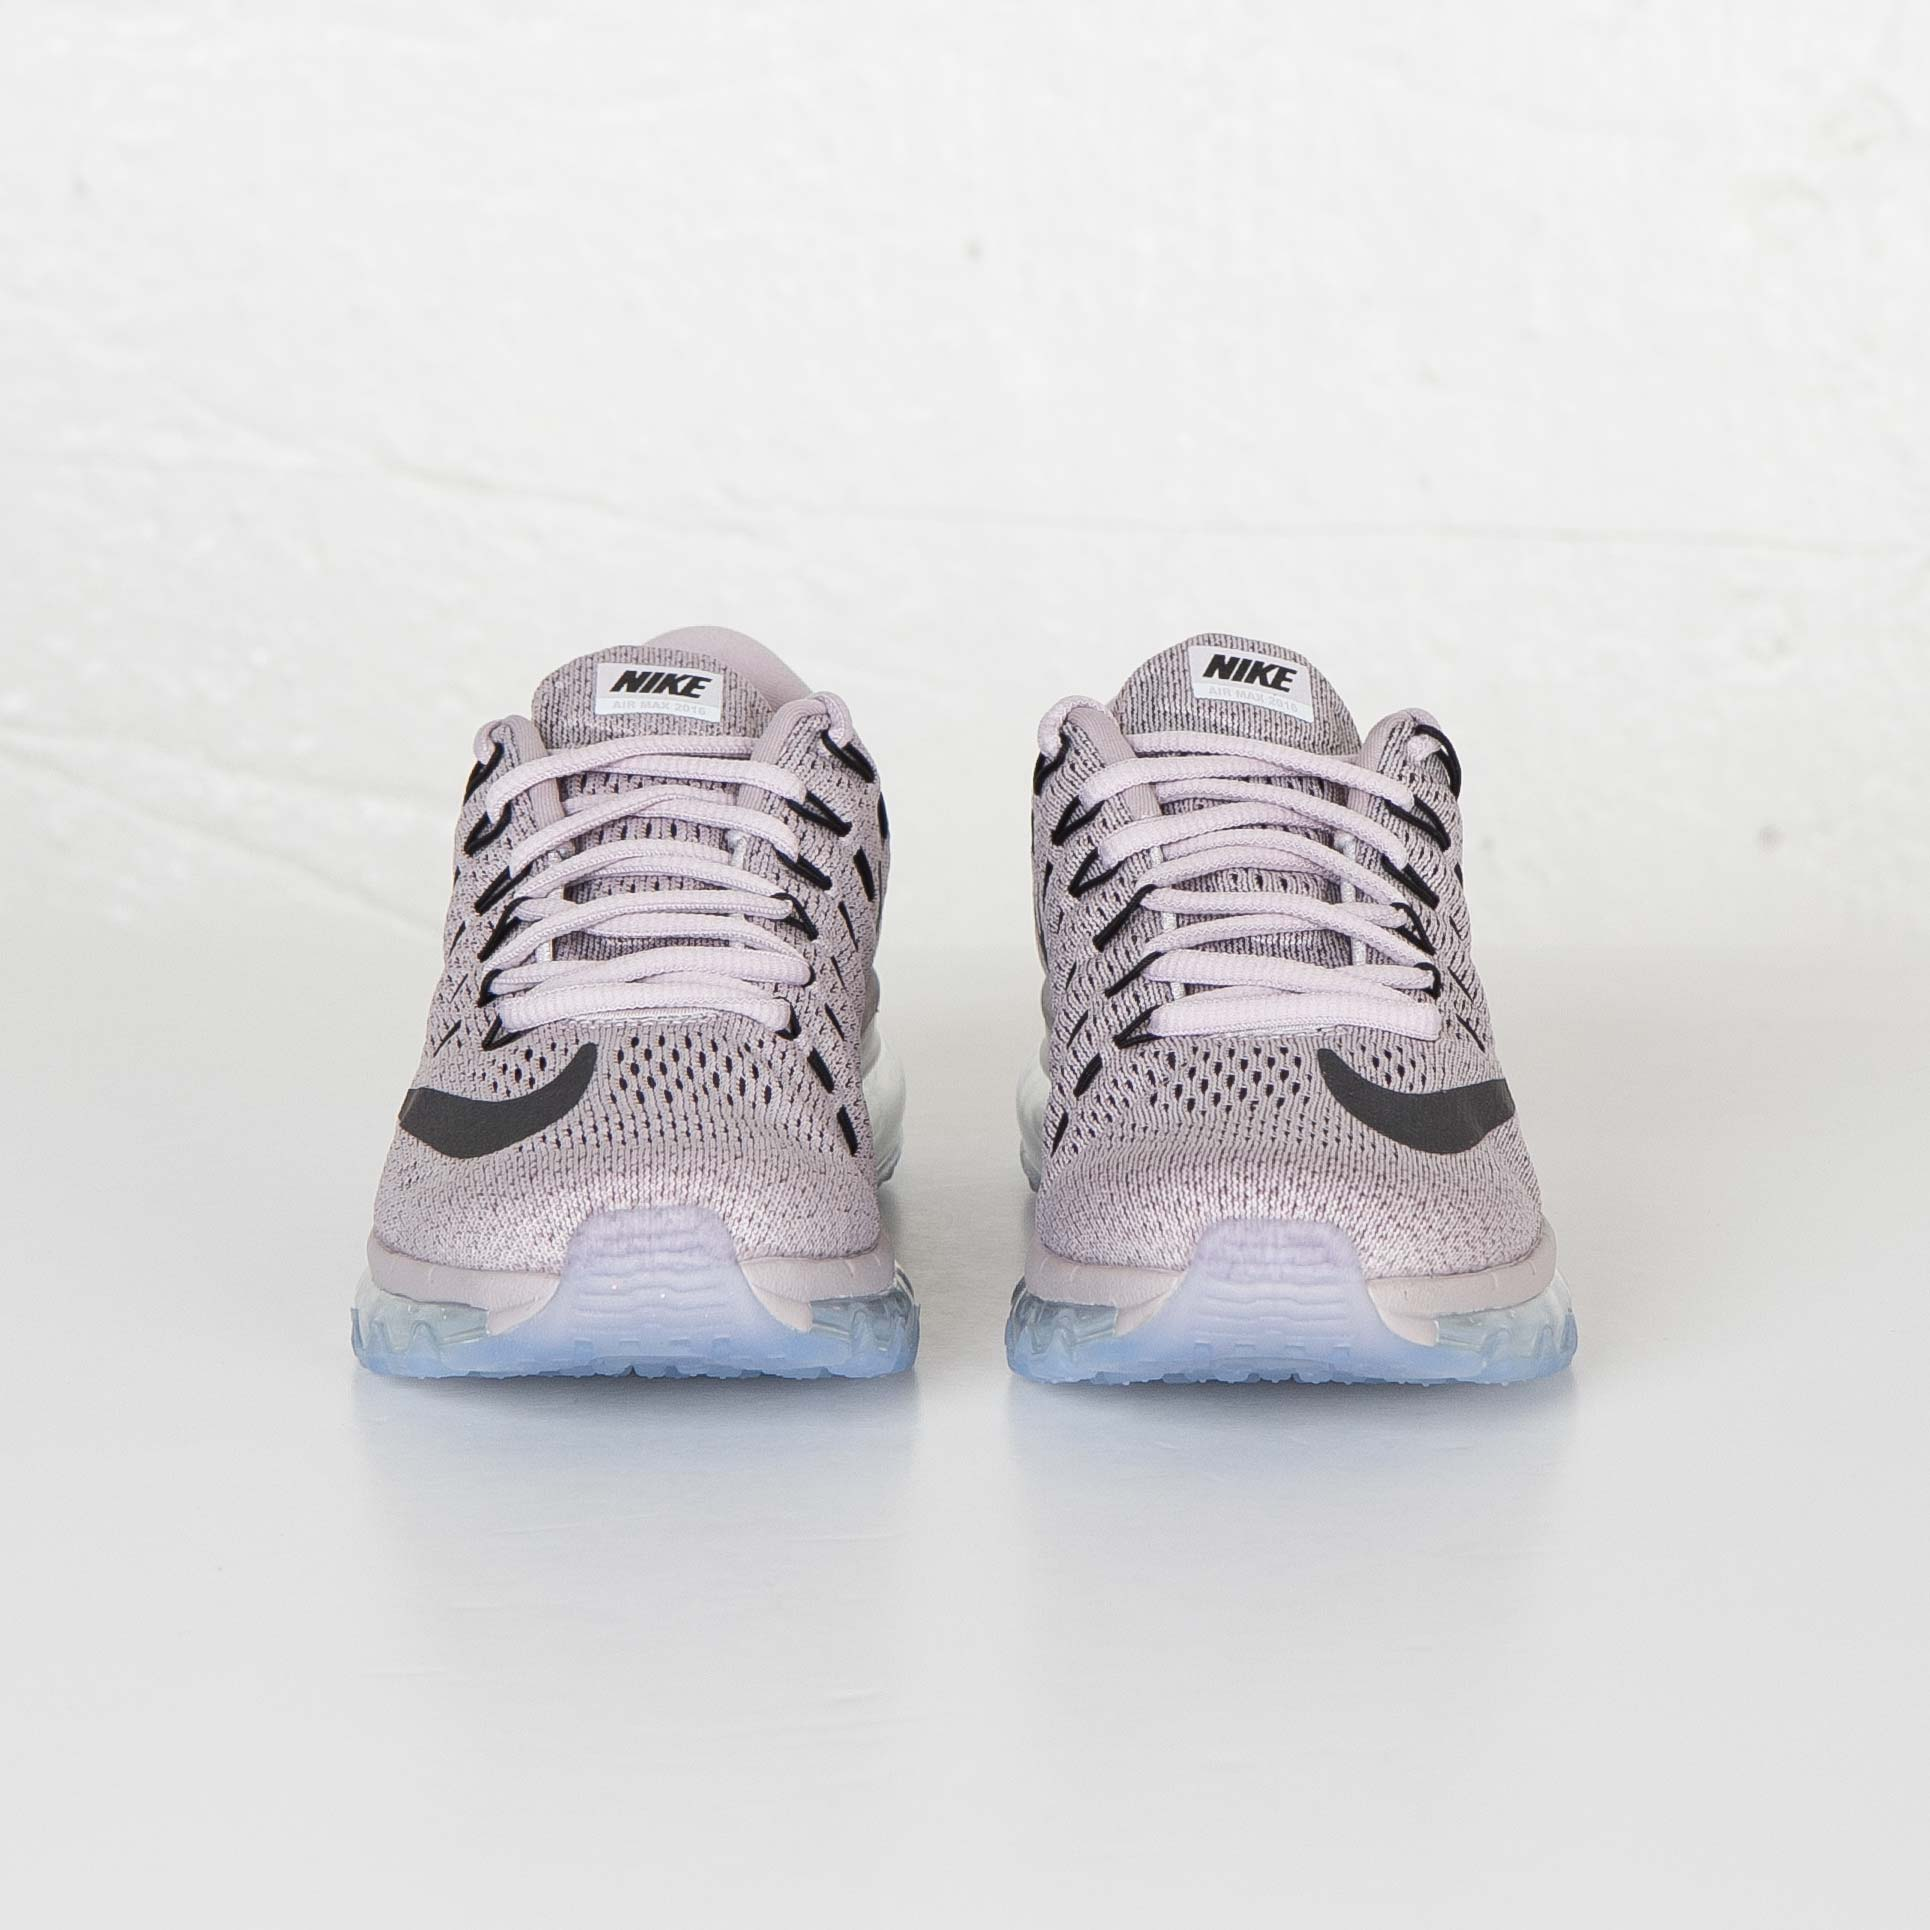 separation shoes 4c2e7 390e3 Nike Wmns Air Max 2016 - 806772-501 - Sneakersnstuff   sneakers    streetwear online since 1999